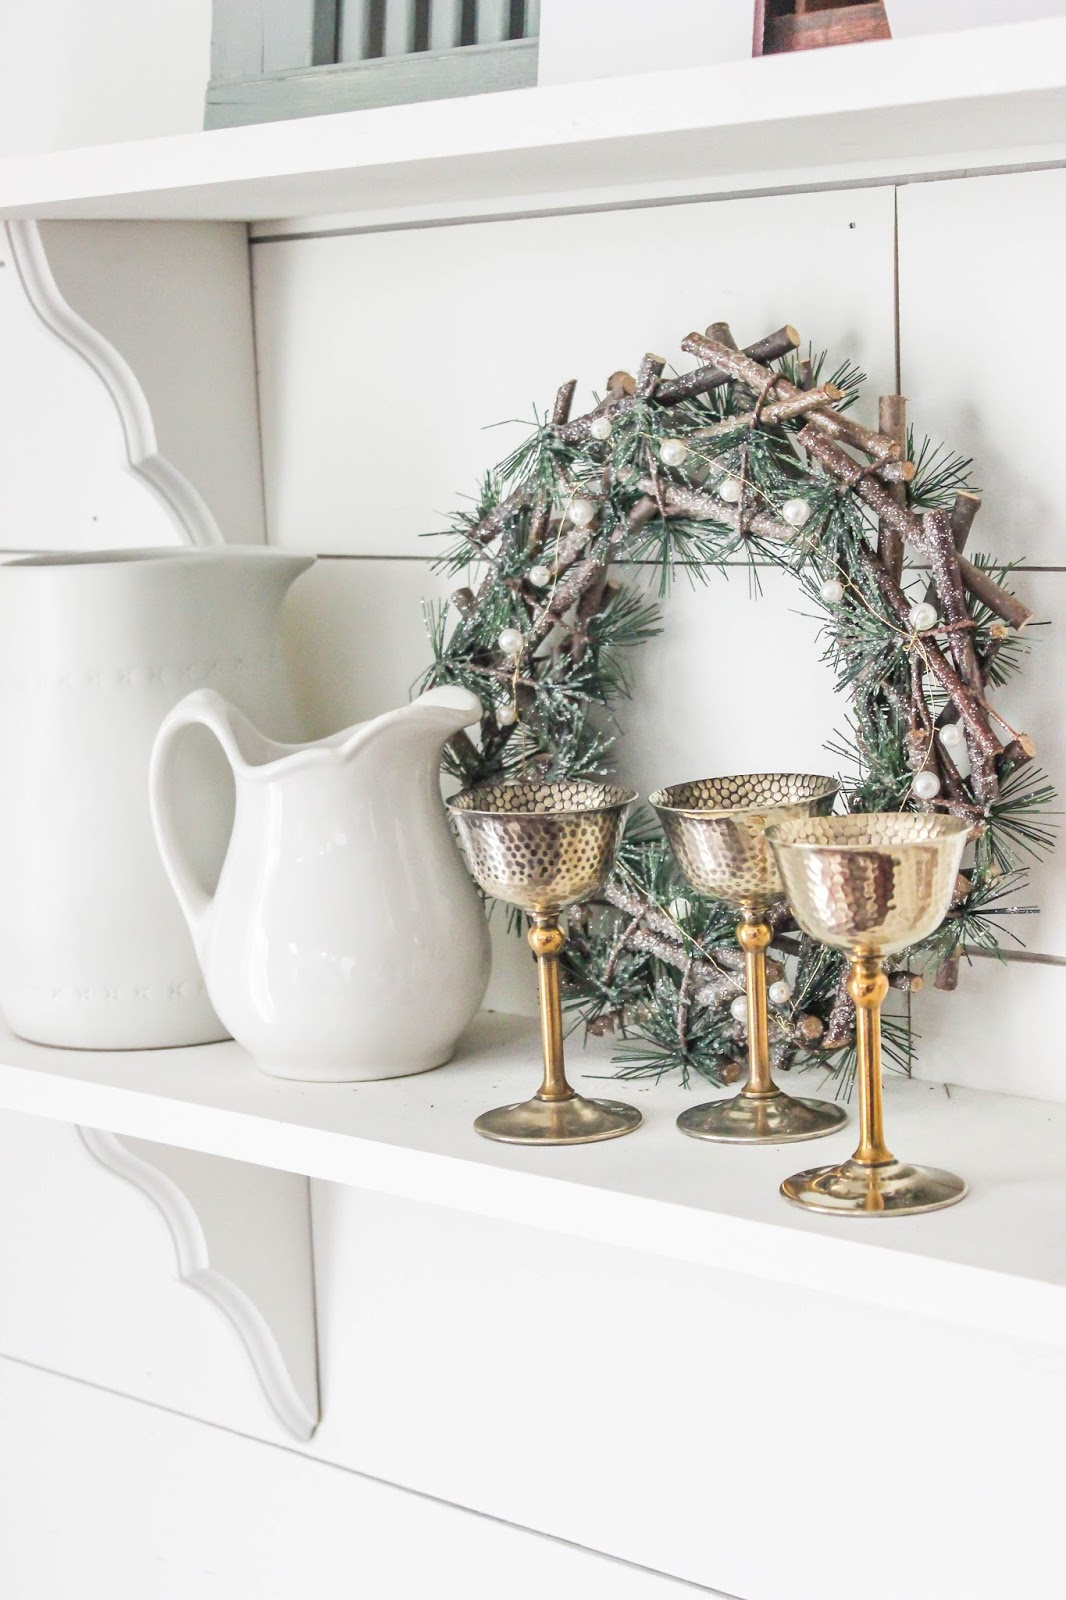 Christmas shelf decoration ideas